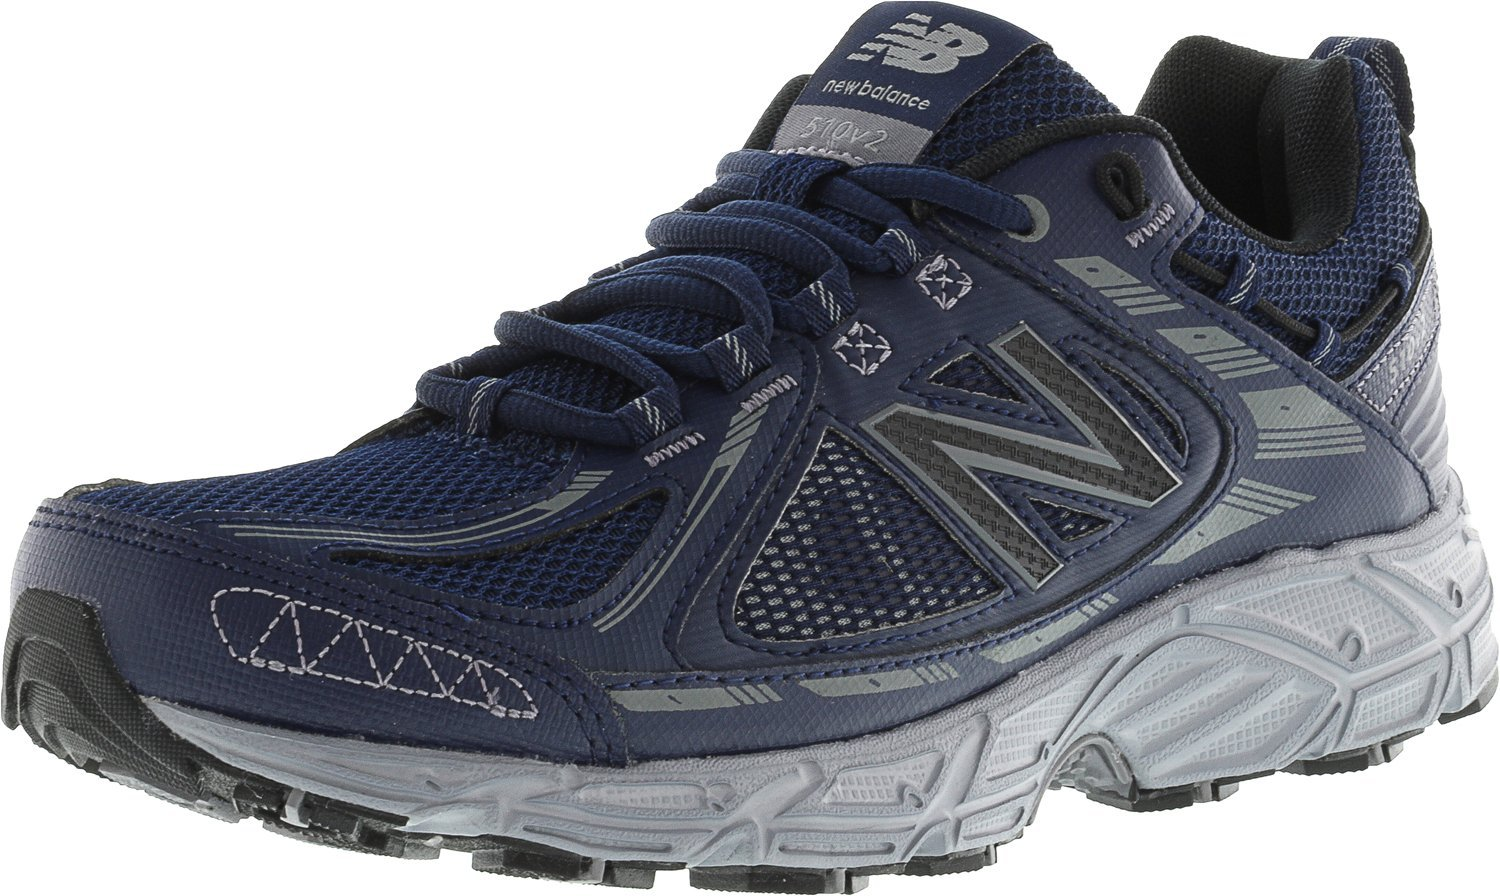 New Balance Mens MT510SN2 Low Top Lace up Tennis Shoes, Navy/Grey, Size 8.0 by New Balance